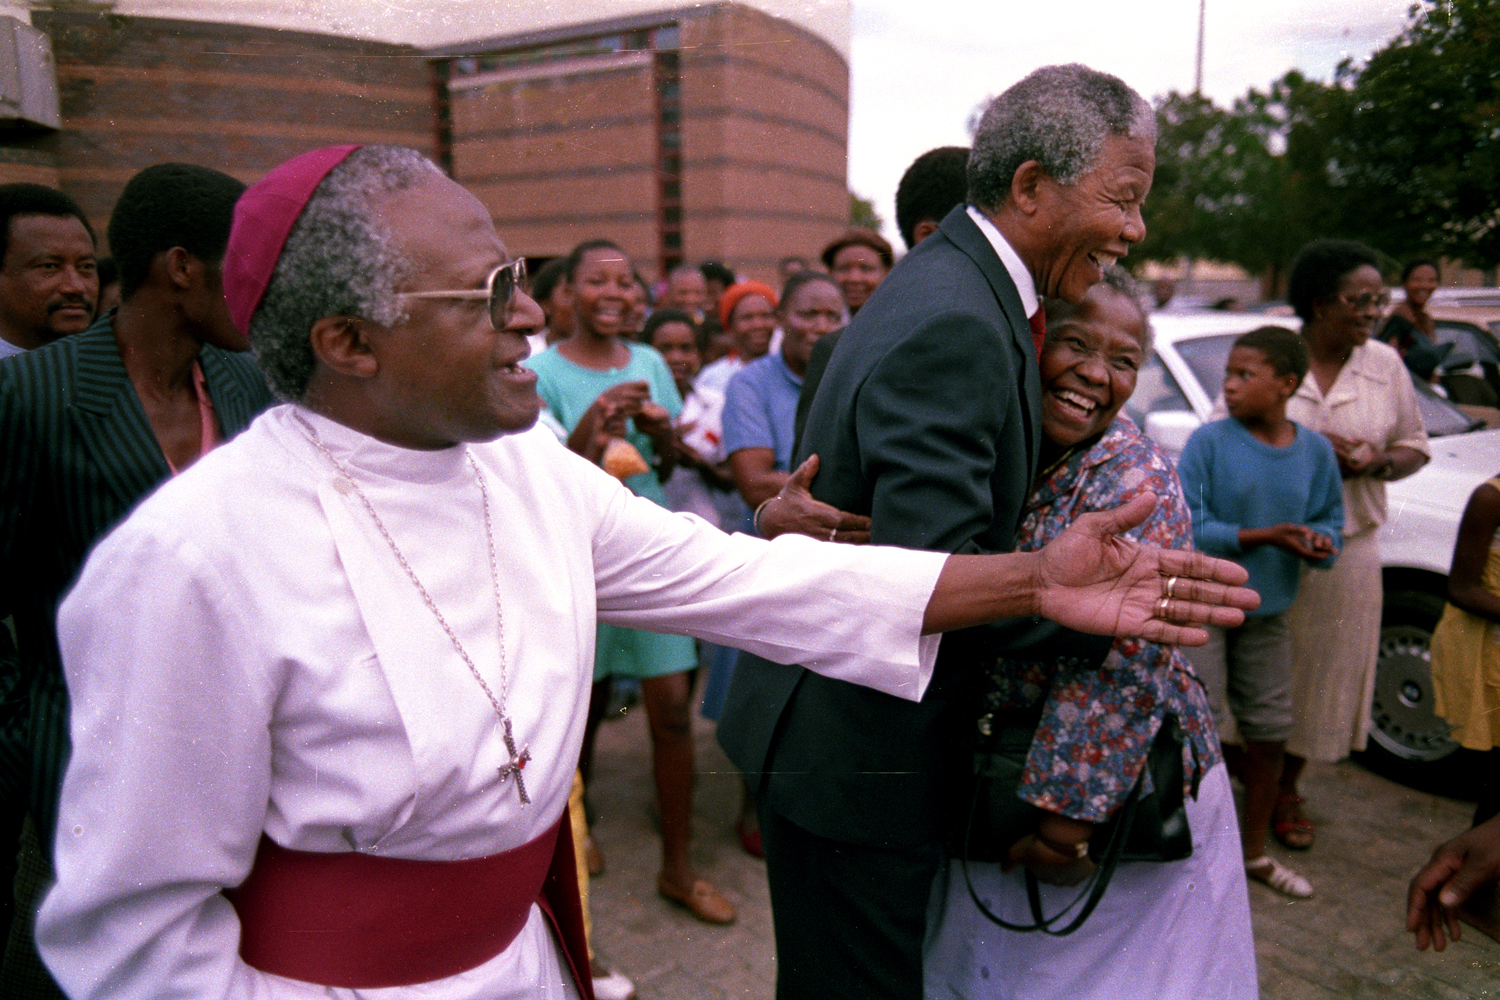 Archbishop Desmond Tutu leads Mandela through the neighborhood in Soweto where Mandela lived before going to prison — the same neighborhood home to Archbishop Tutu — on the first day of his release from prison.